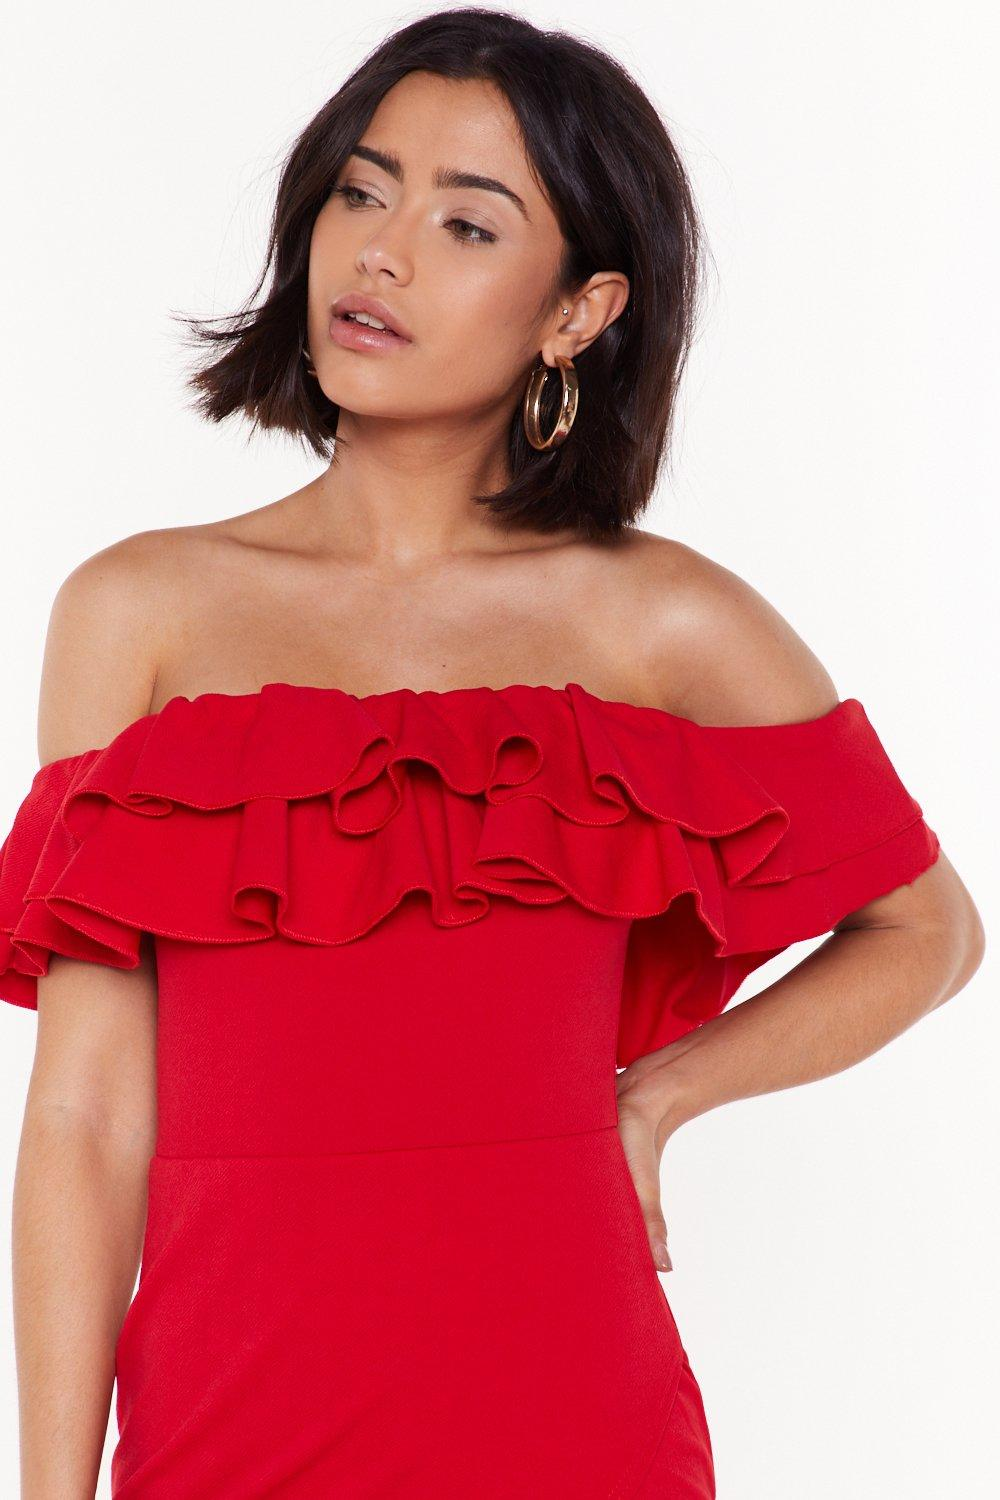 e9e2d86cd685 In the Evening Ruffle Dress   Shop Clothes at Nasty Gal!